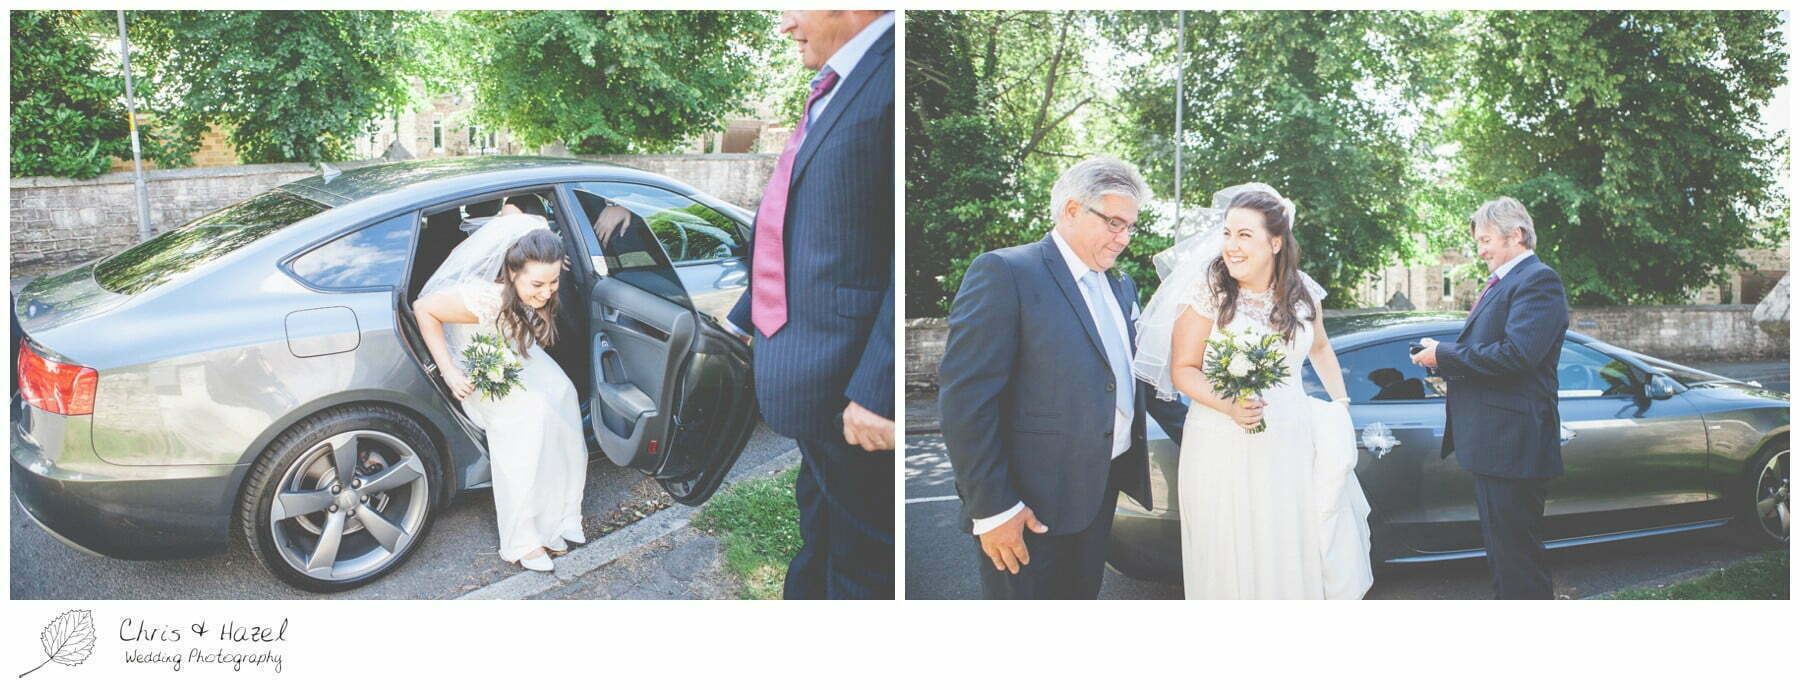 bride getting out of wedding car with father, st marys church, wedding, south milford Wedding Photographer, the engine shed, Wedding Photography wetherby, Chris and Hazel Wedding Photography, stevie pollard, stevie standerline, paul standerline,